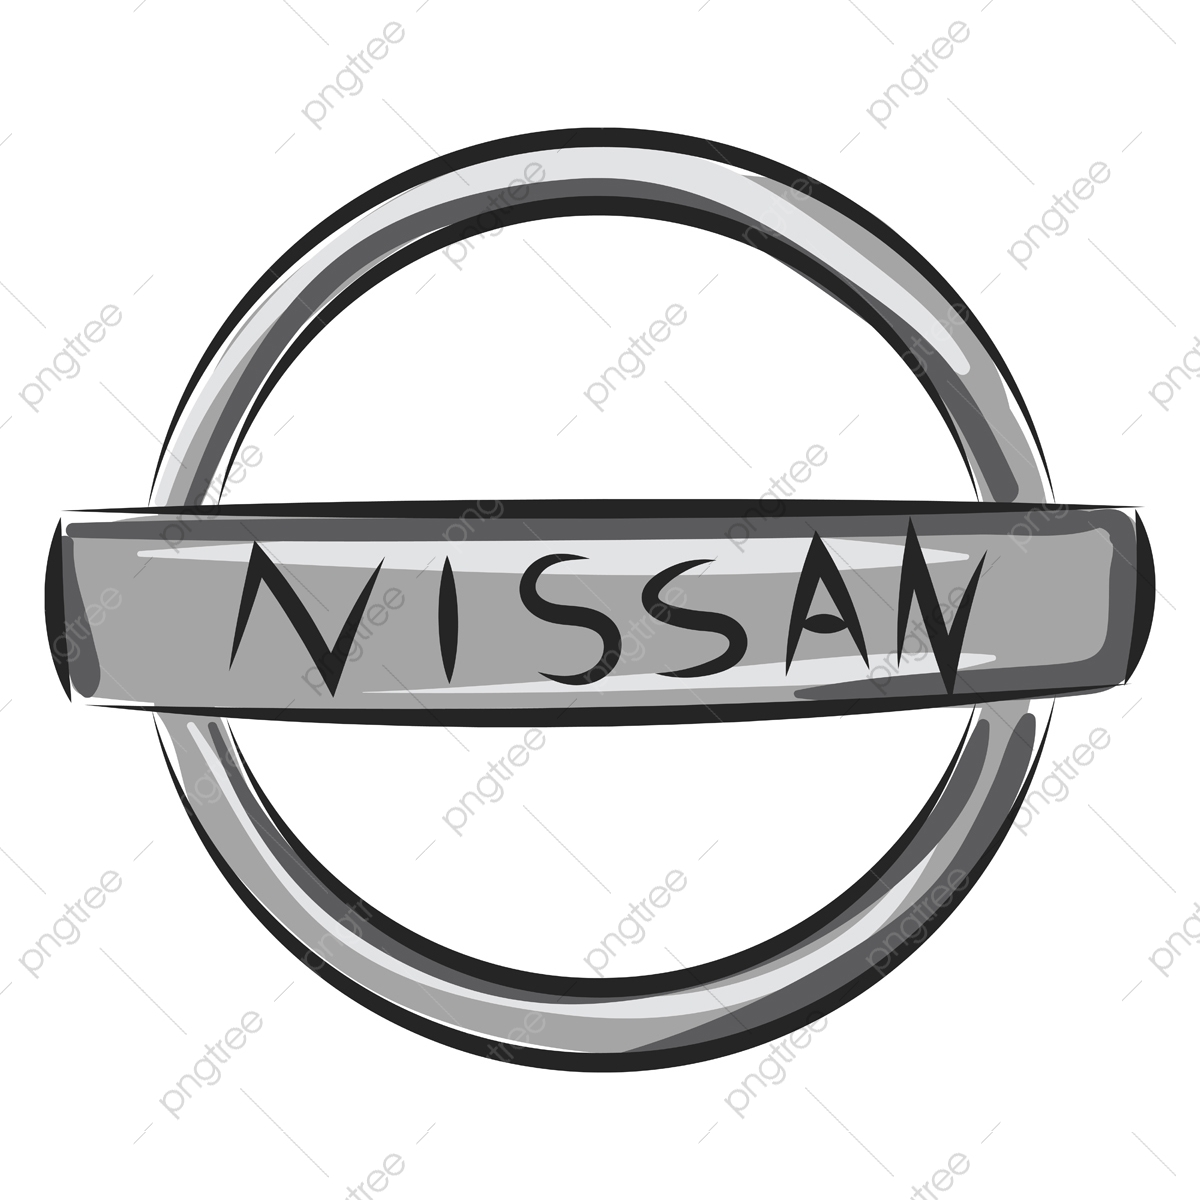 Nissan Logo Vector Or Color Illustration, Circle, Ring, Steering Pluspng.com  - Nissan Logo PNG